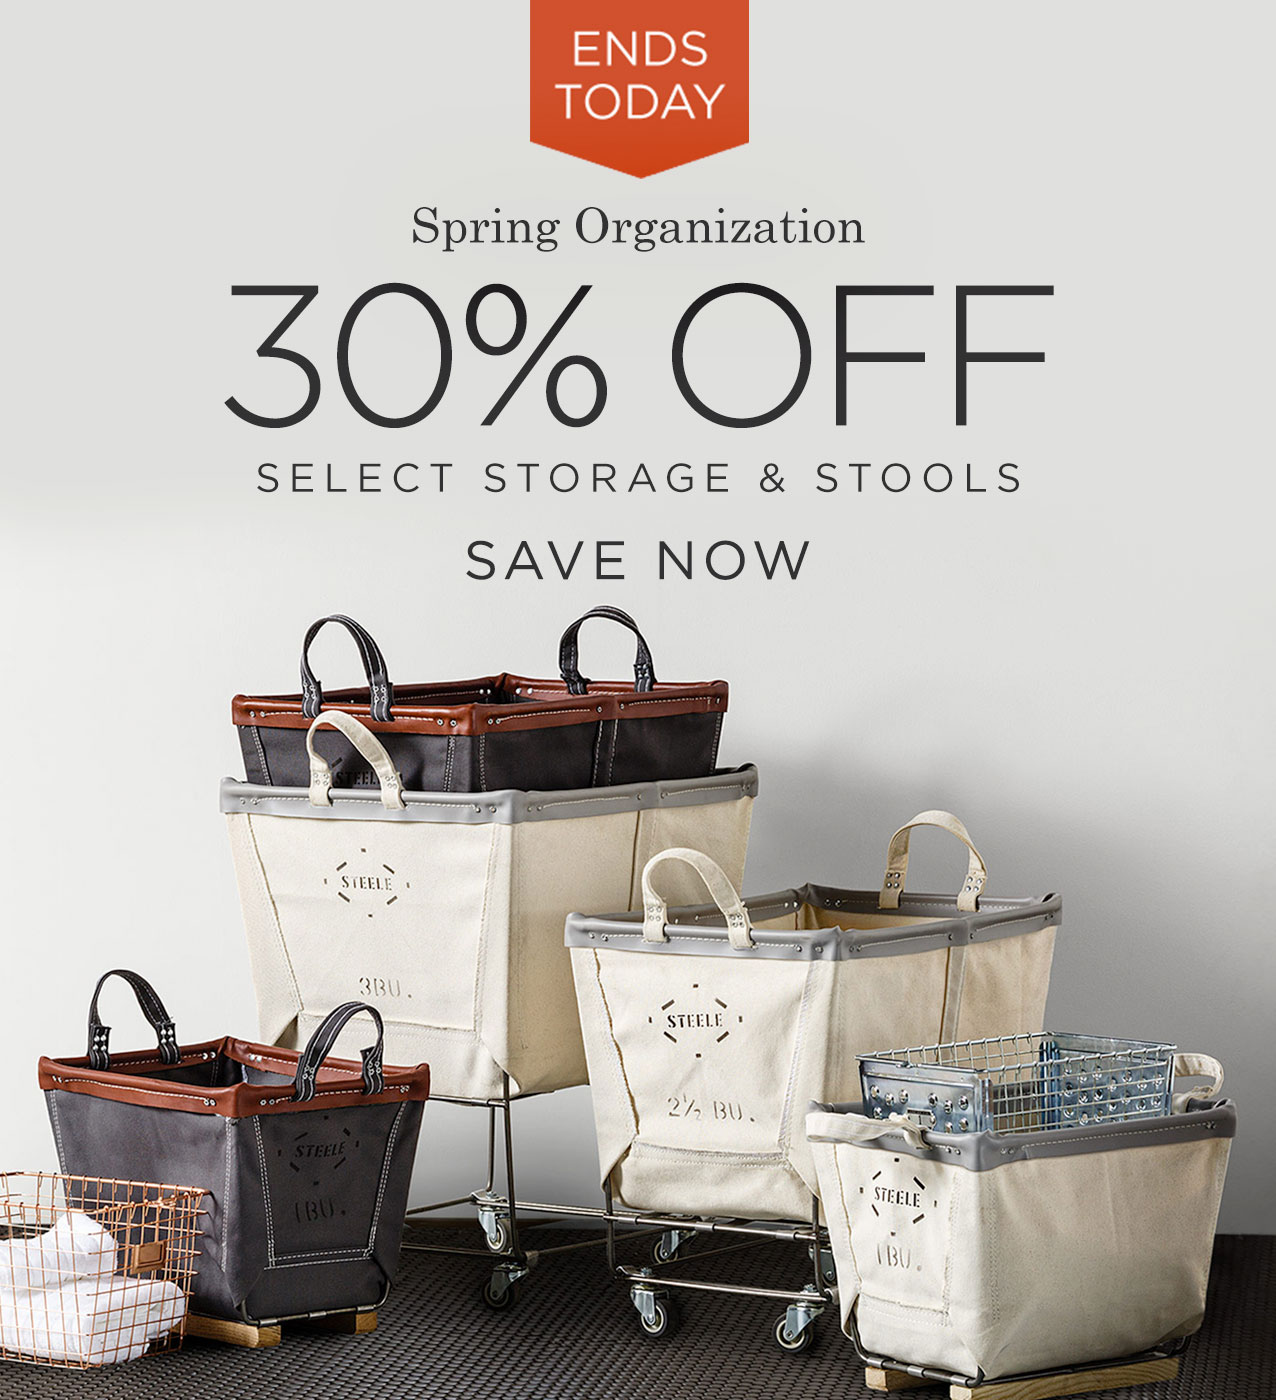 Spring Organization: Save 30% on Select Storage & Stools